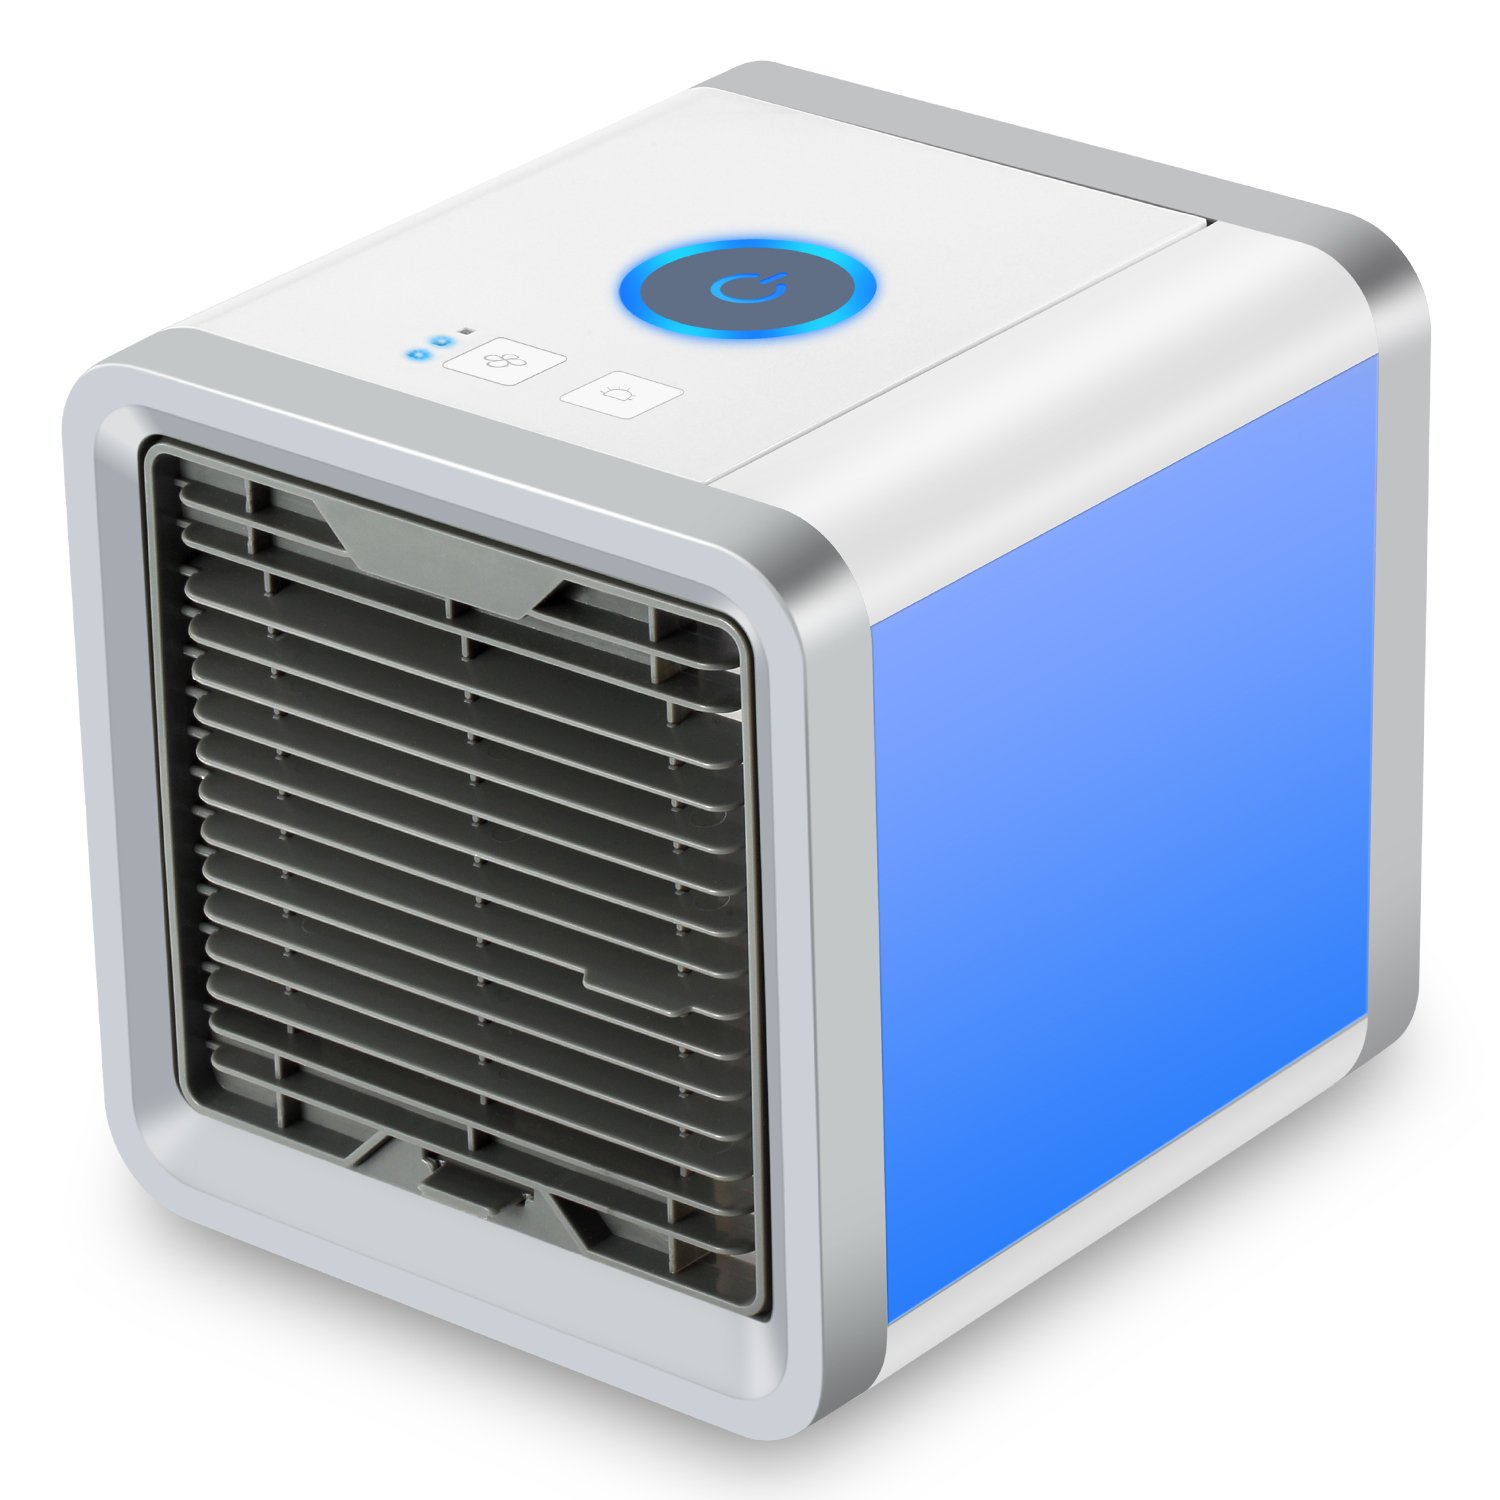 Personal Space Air Cooler, SENDOW 3-in-1 Desk Air Conditioner/Humidifier/Purifier, USB Cooling Fan with 7 Colors LED & 3 Speeds Setting for Home Office Bedroom Yoga